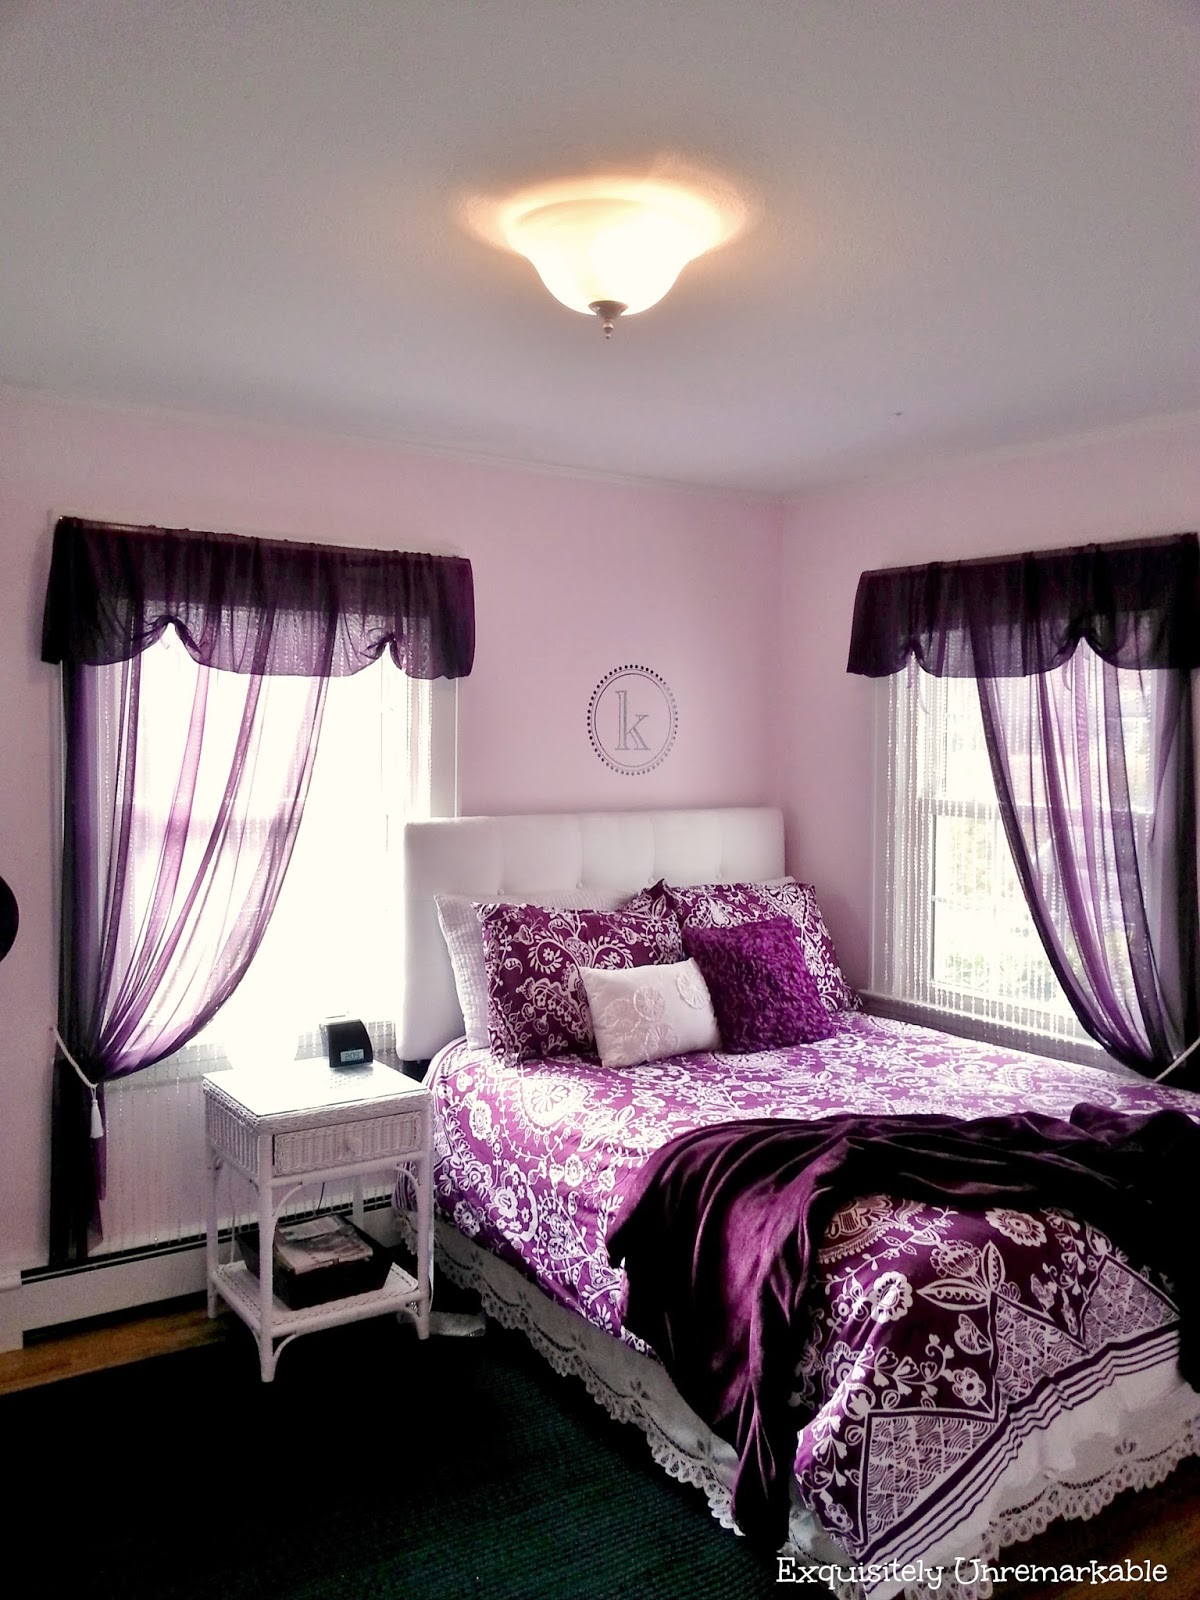 The Real Reason Why I Always Make My Bed |Exquisitely ... on Teenage Bed  id=21857